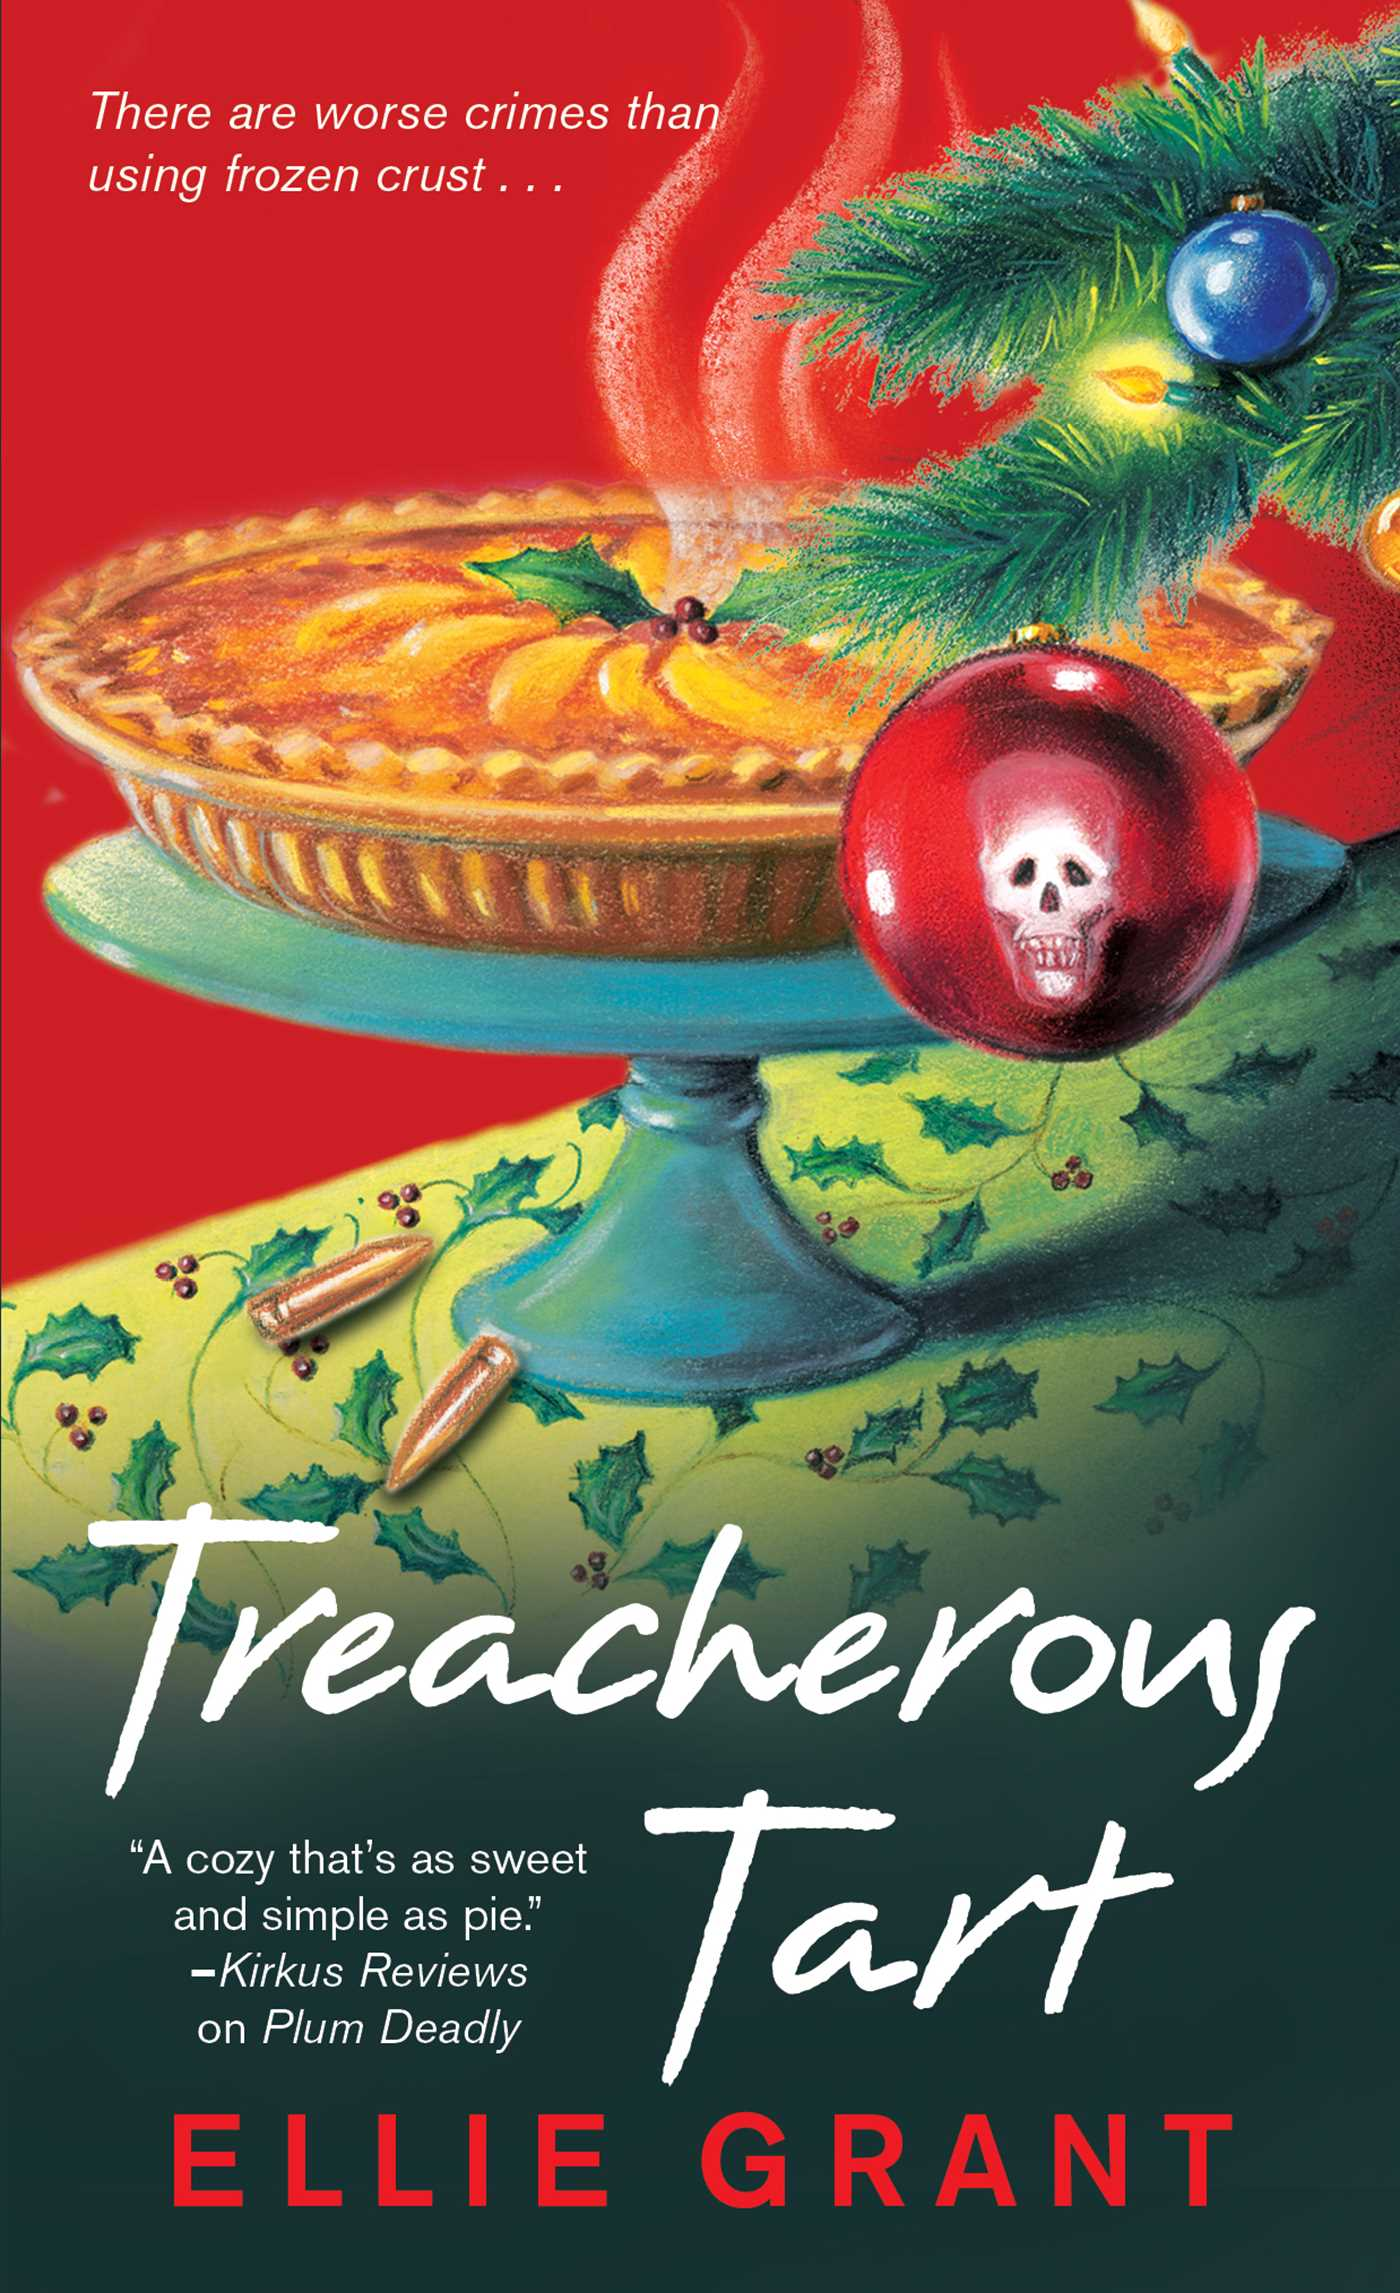 Treacherous-tart-9781451689587_hr